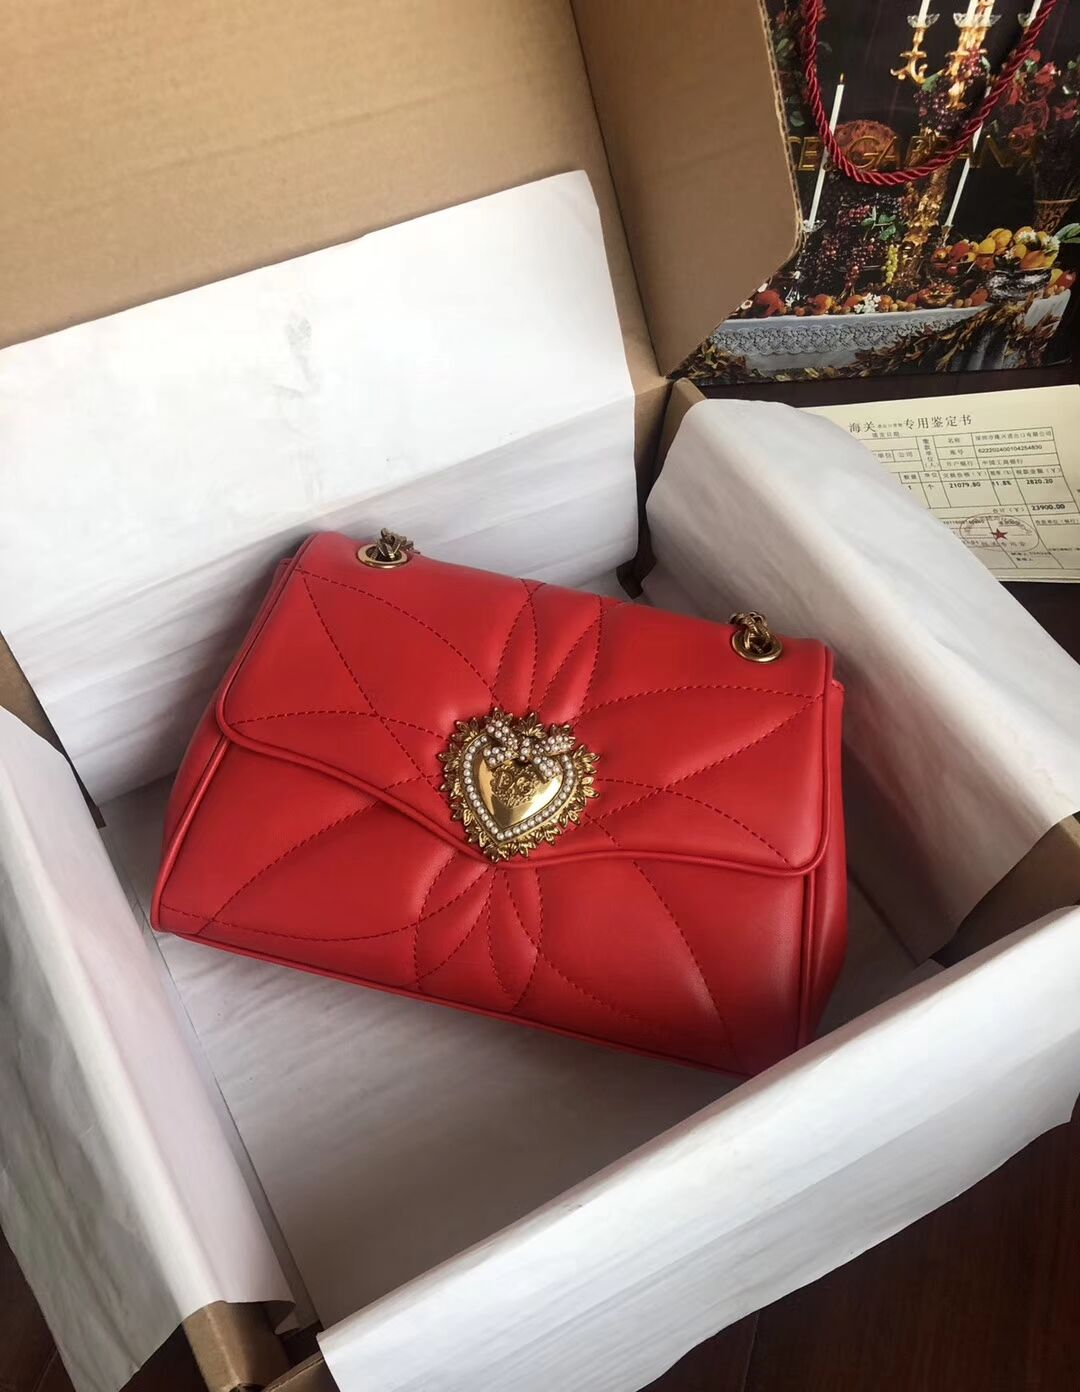 Dolce & Gabbana Origianl Leather Bag 4919 red